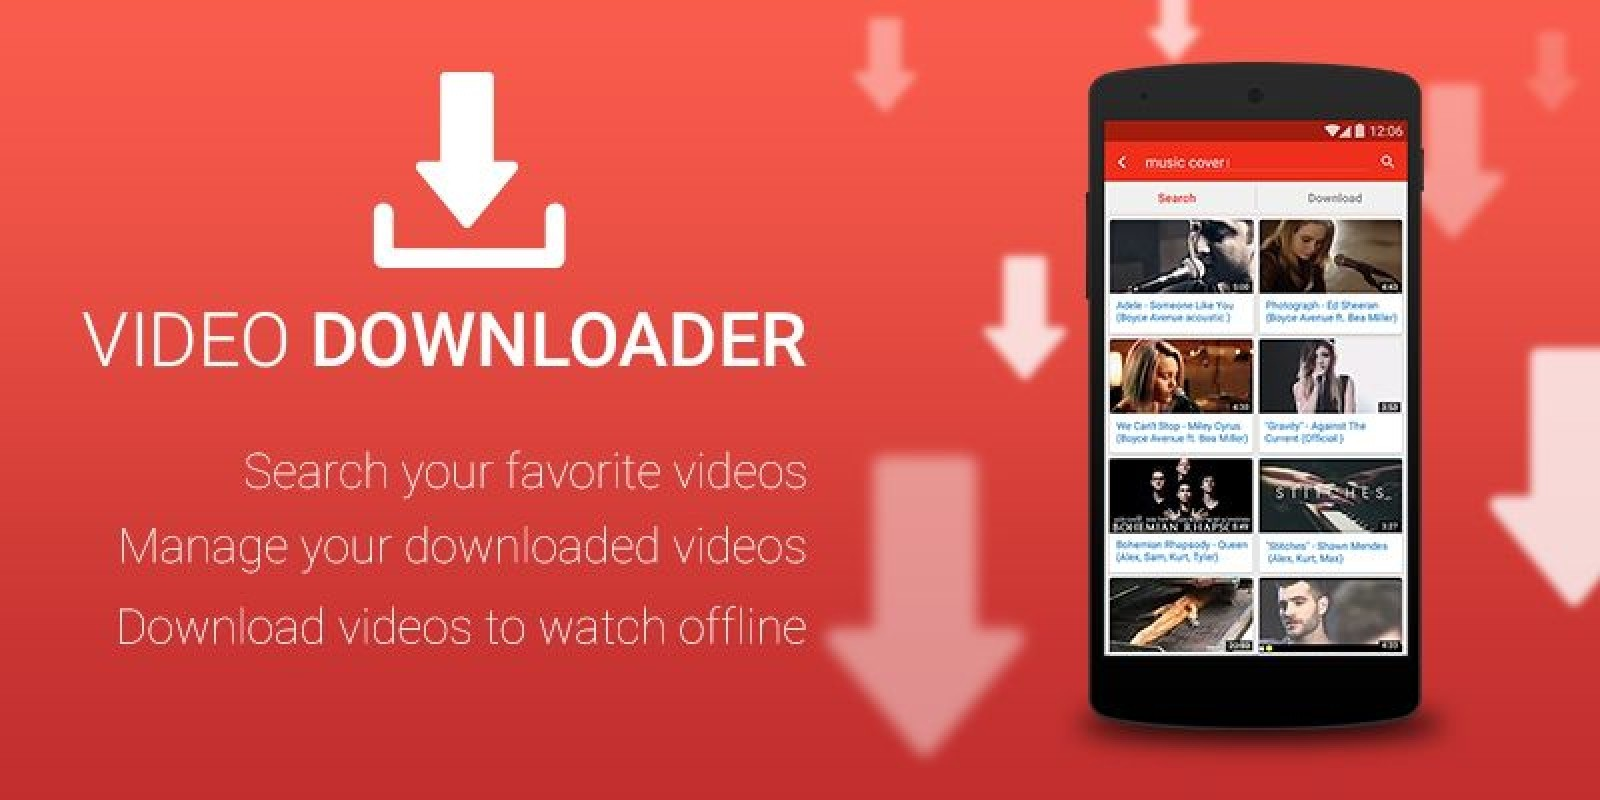 Photo downloader app for android M: Mp3 music downloader - Simple free music